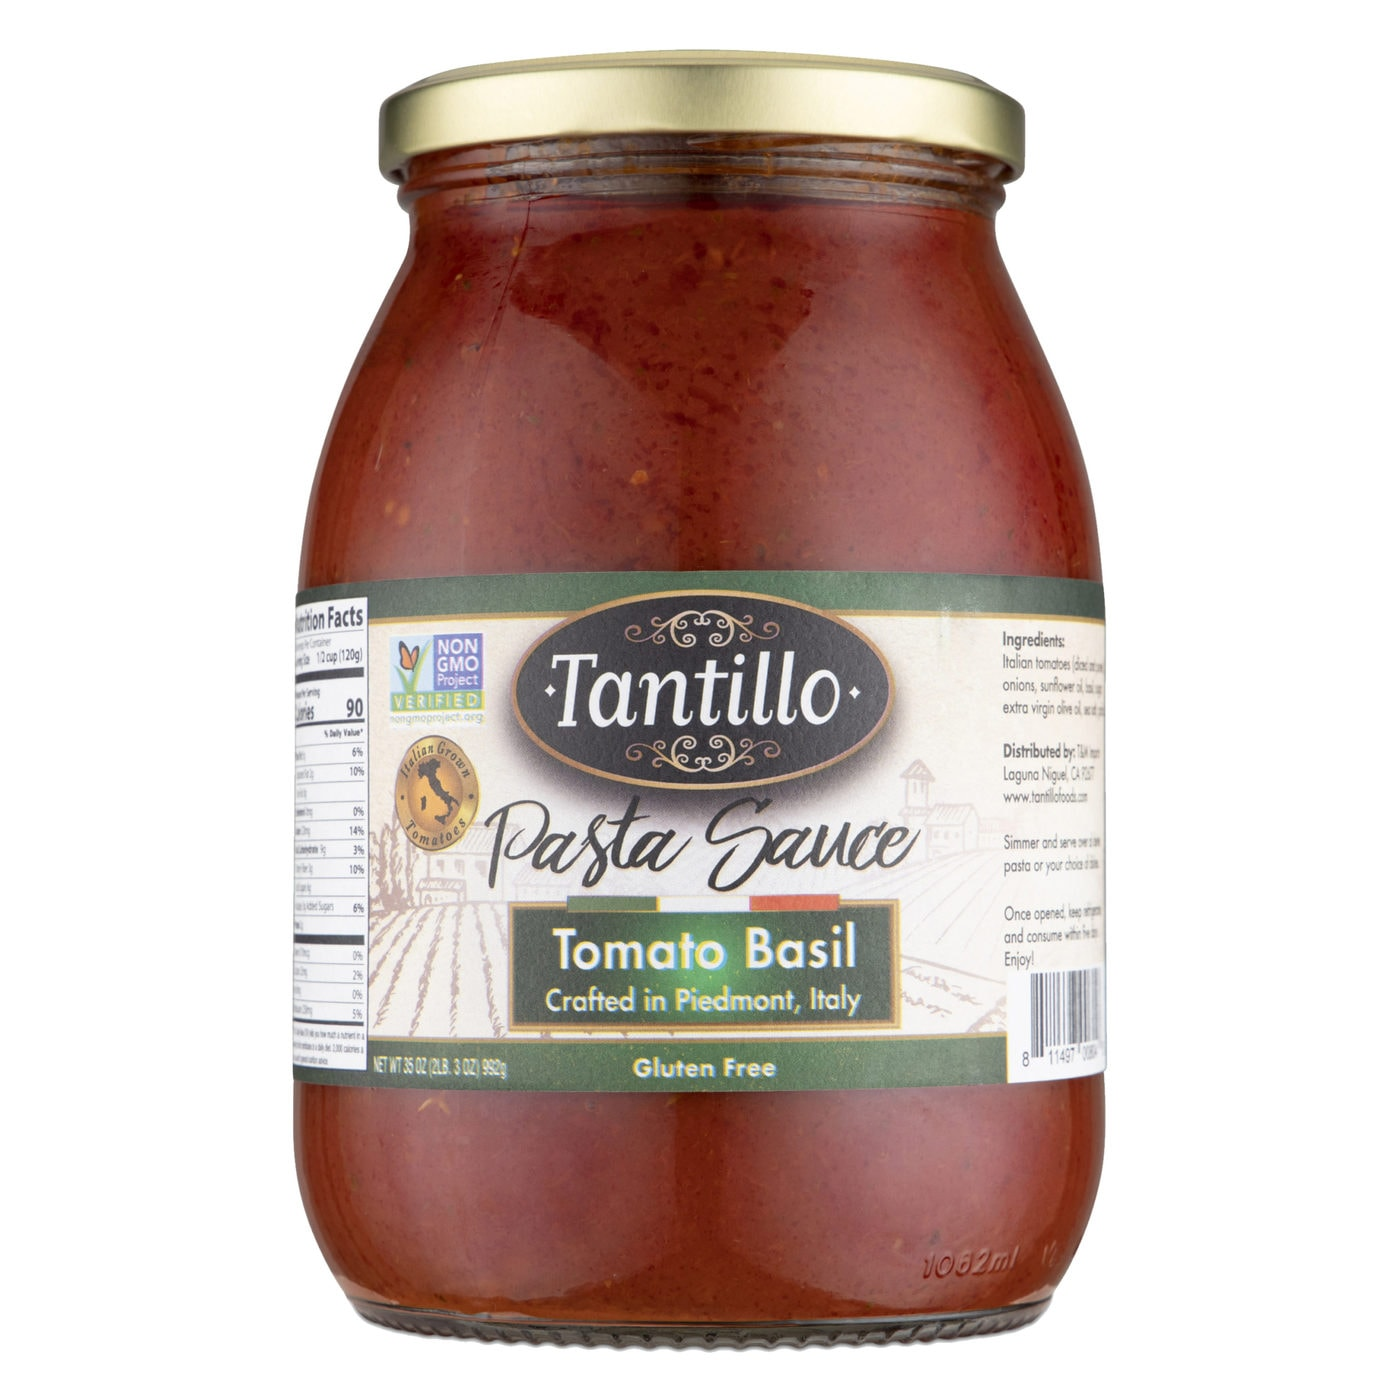 Tantillo Imported Italian Tomato Basil Pasta Sauce 35oz (Pack of 2)